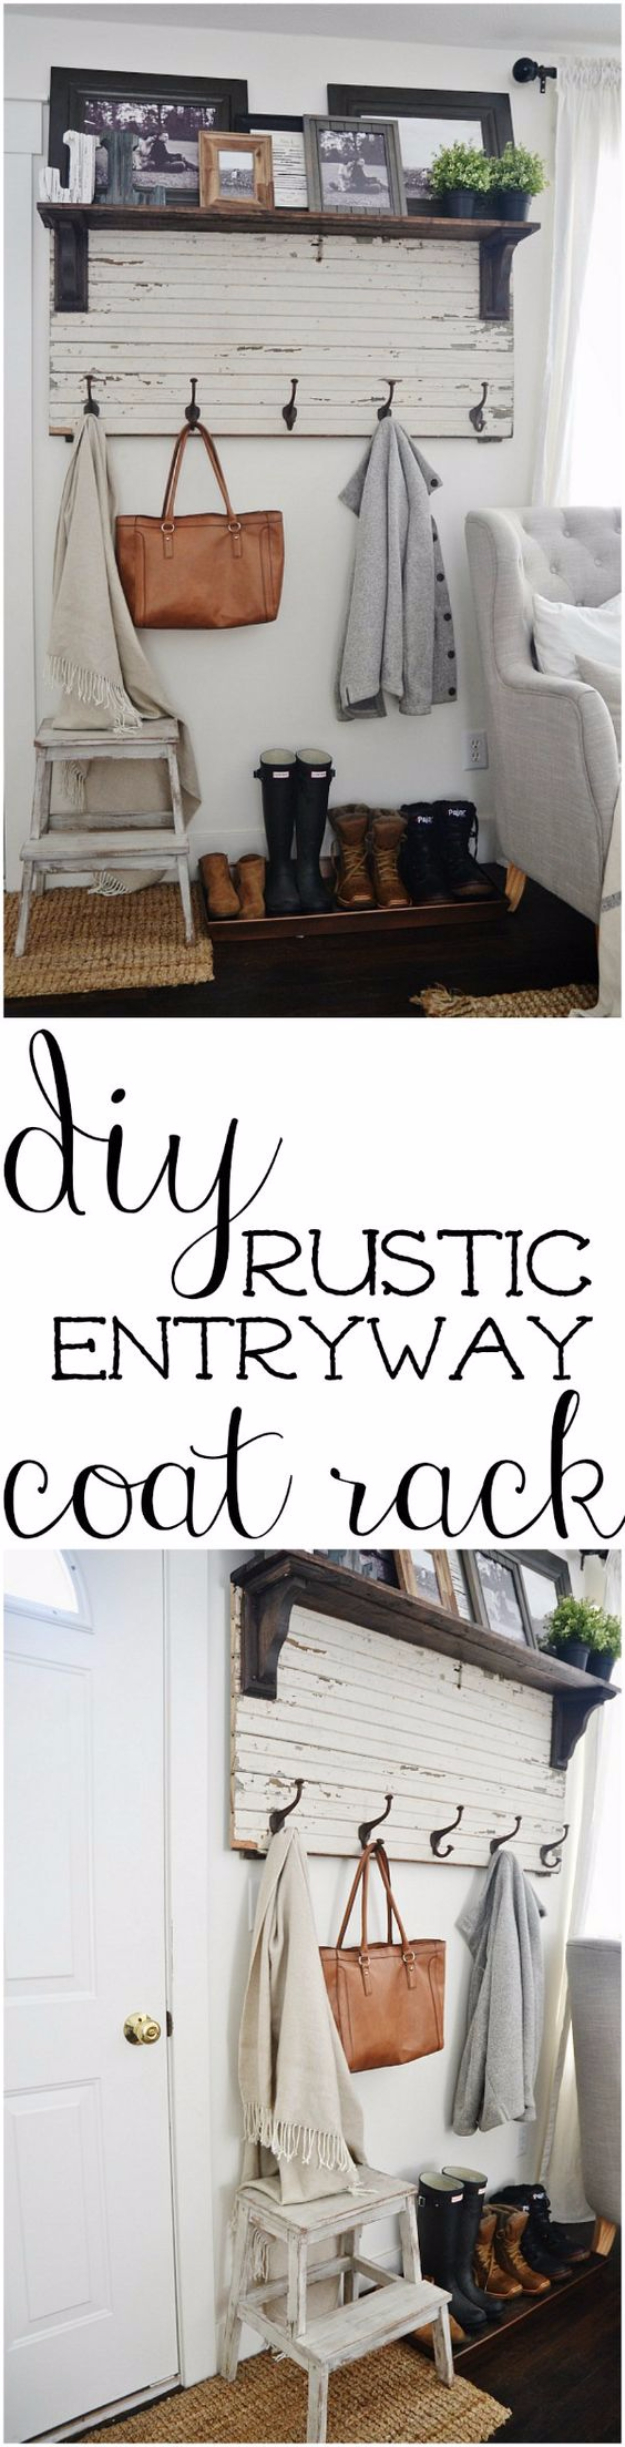 DIY Ideas for Your Entry - DIY Rustic Entryway Coat Rack - Cool and Creative Home Decor or Entryway and Hall. Modern, Rustic and Classic Decor on a Budget. Impress House Guests and Fall in Love With These DIY Furniture and Wall Art Ideas #diydecor #diyhomedecor